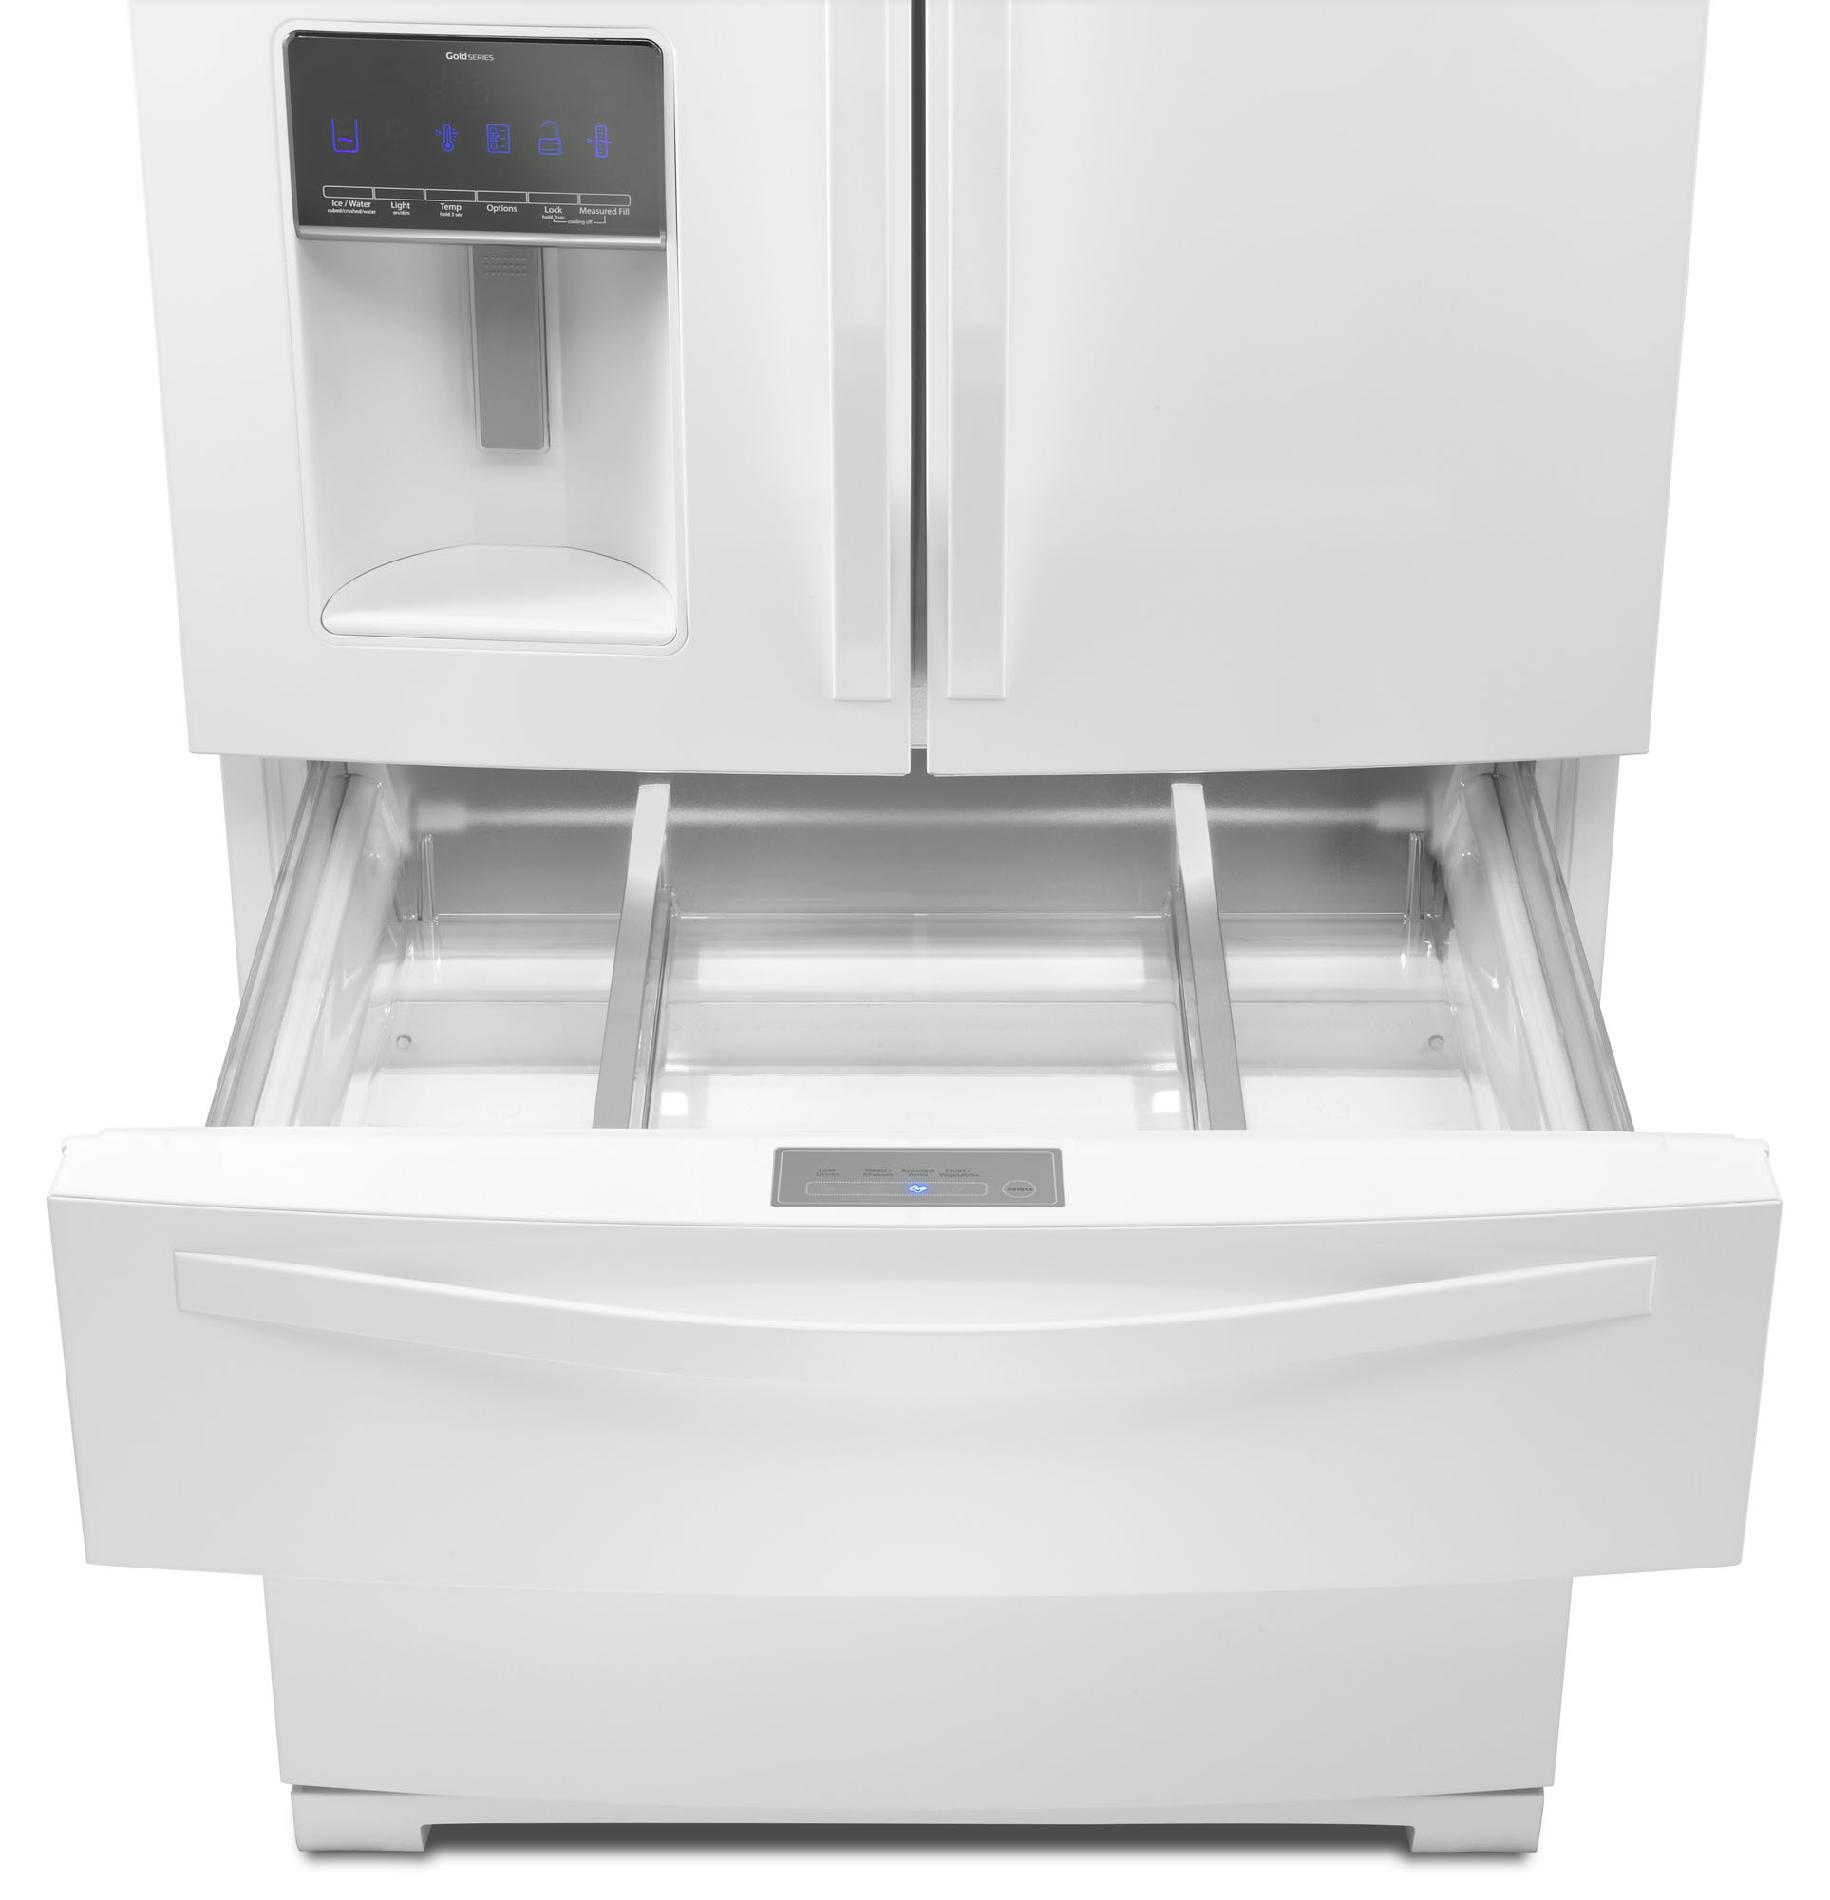 Whirlpool 28.1 cu. ft. French Door Refrigerator w/ Most Flexible Storage - White